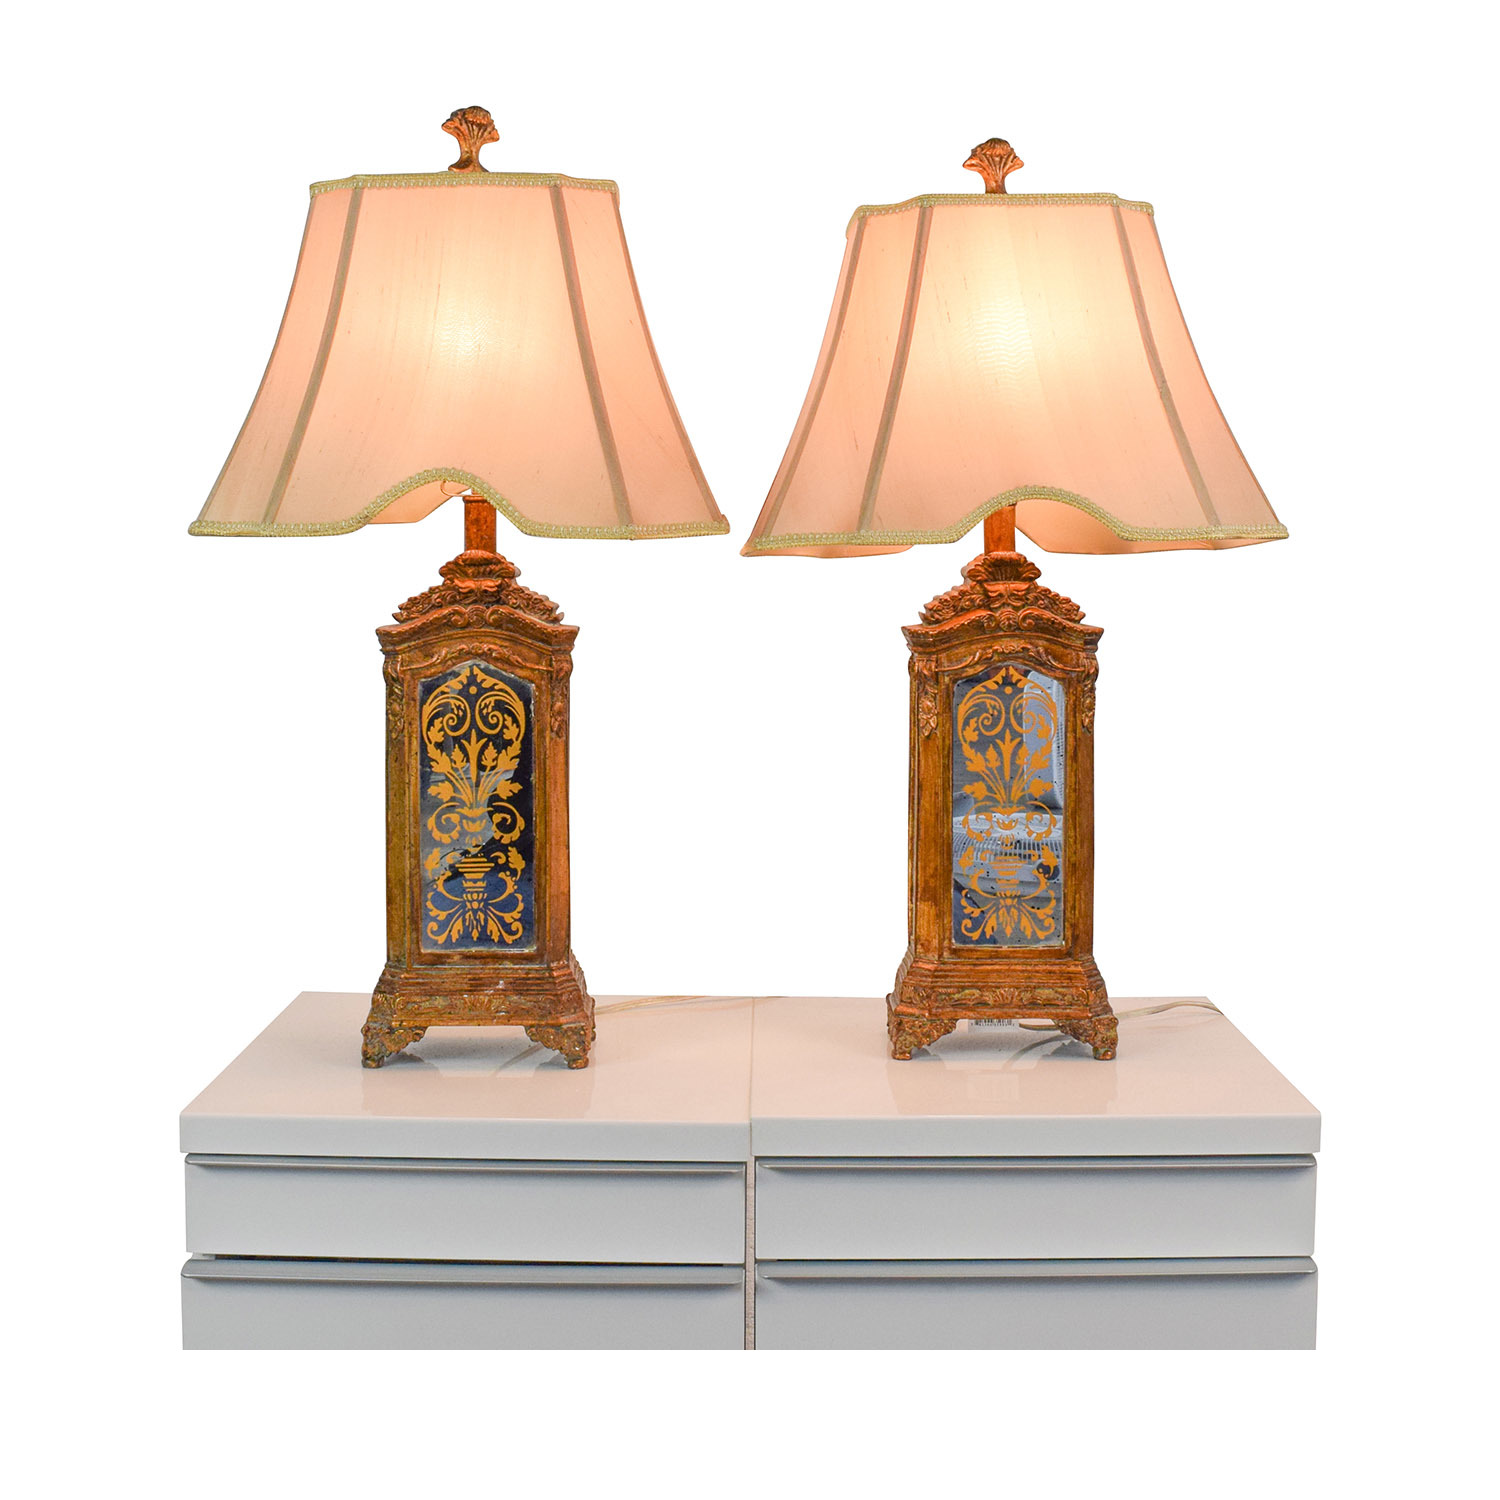 Horchow Horchow Hand Painted Table Lamps used